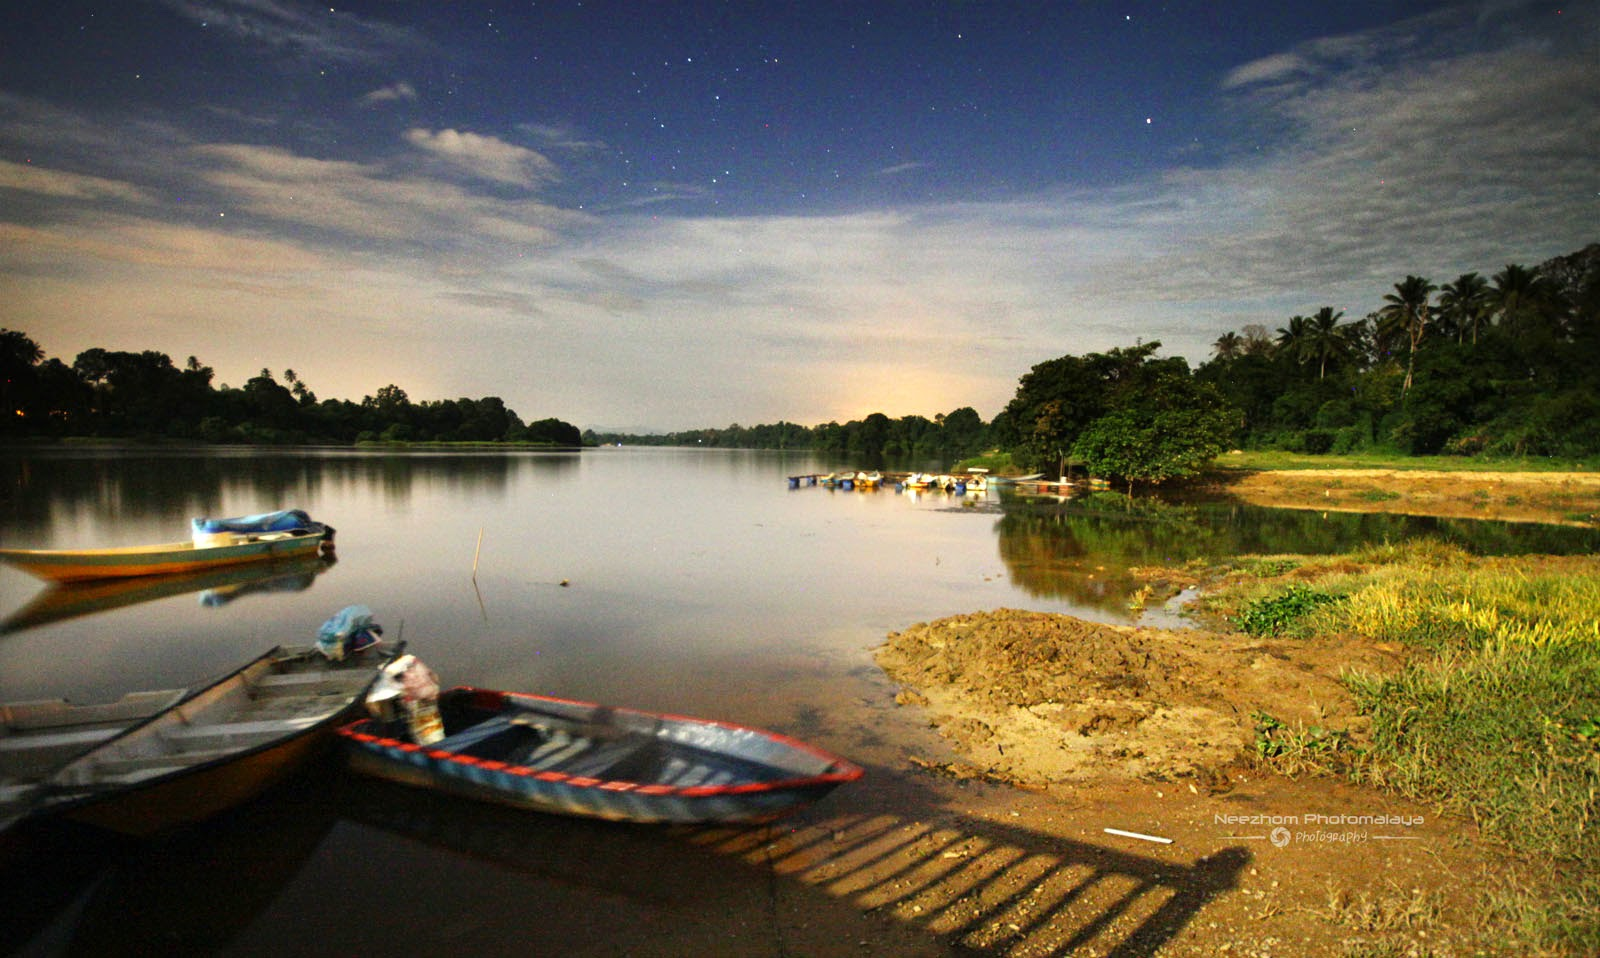 Sungai di kampung Batu Hampar night shot